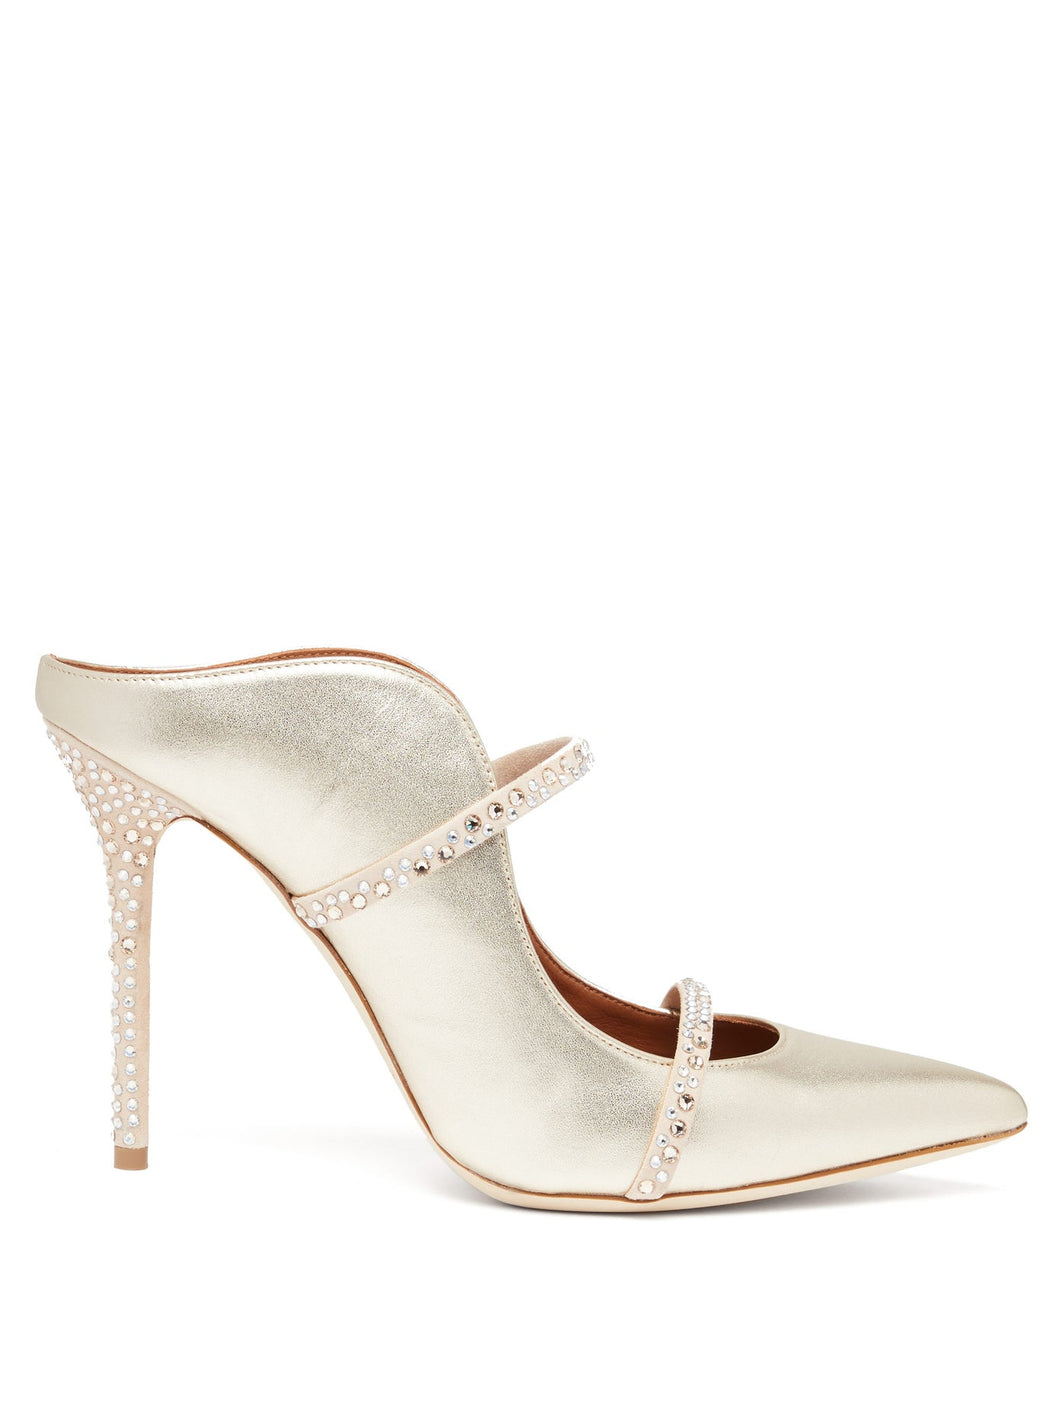 Maureen crystal-embellished leather mules